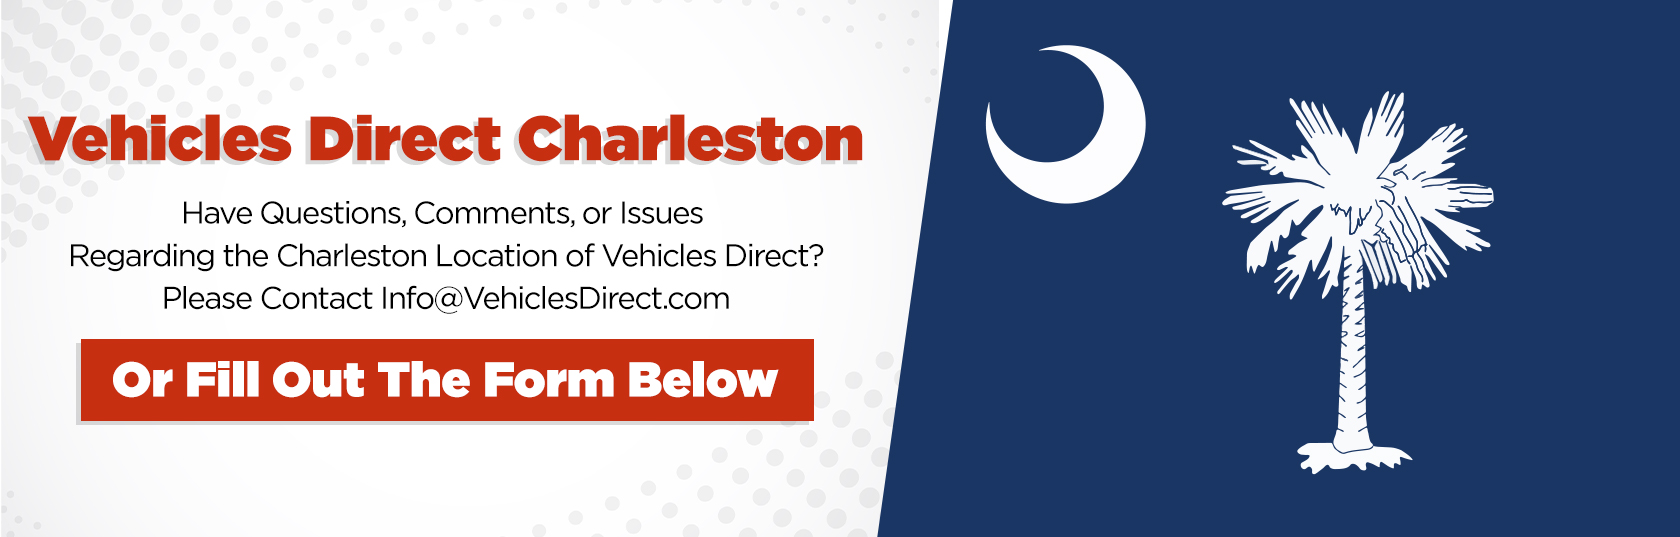 Charleston Location Questions Banner